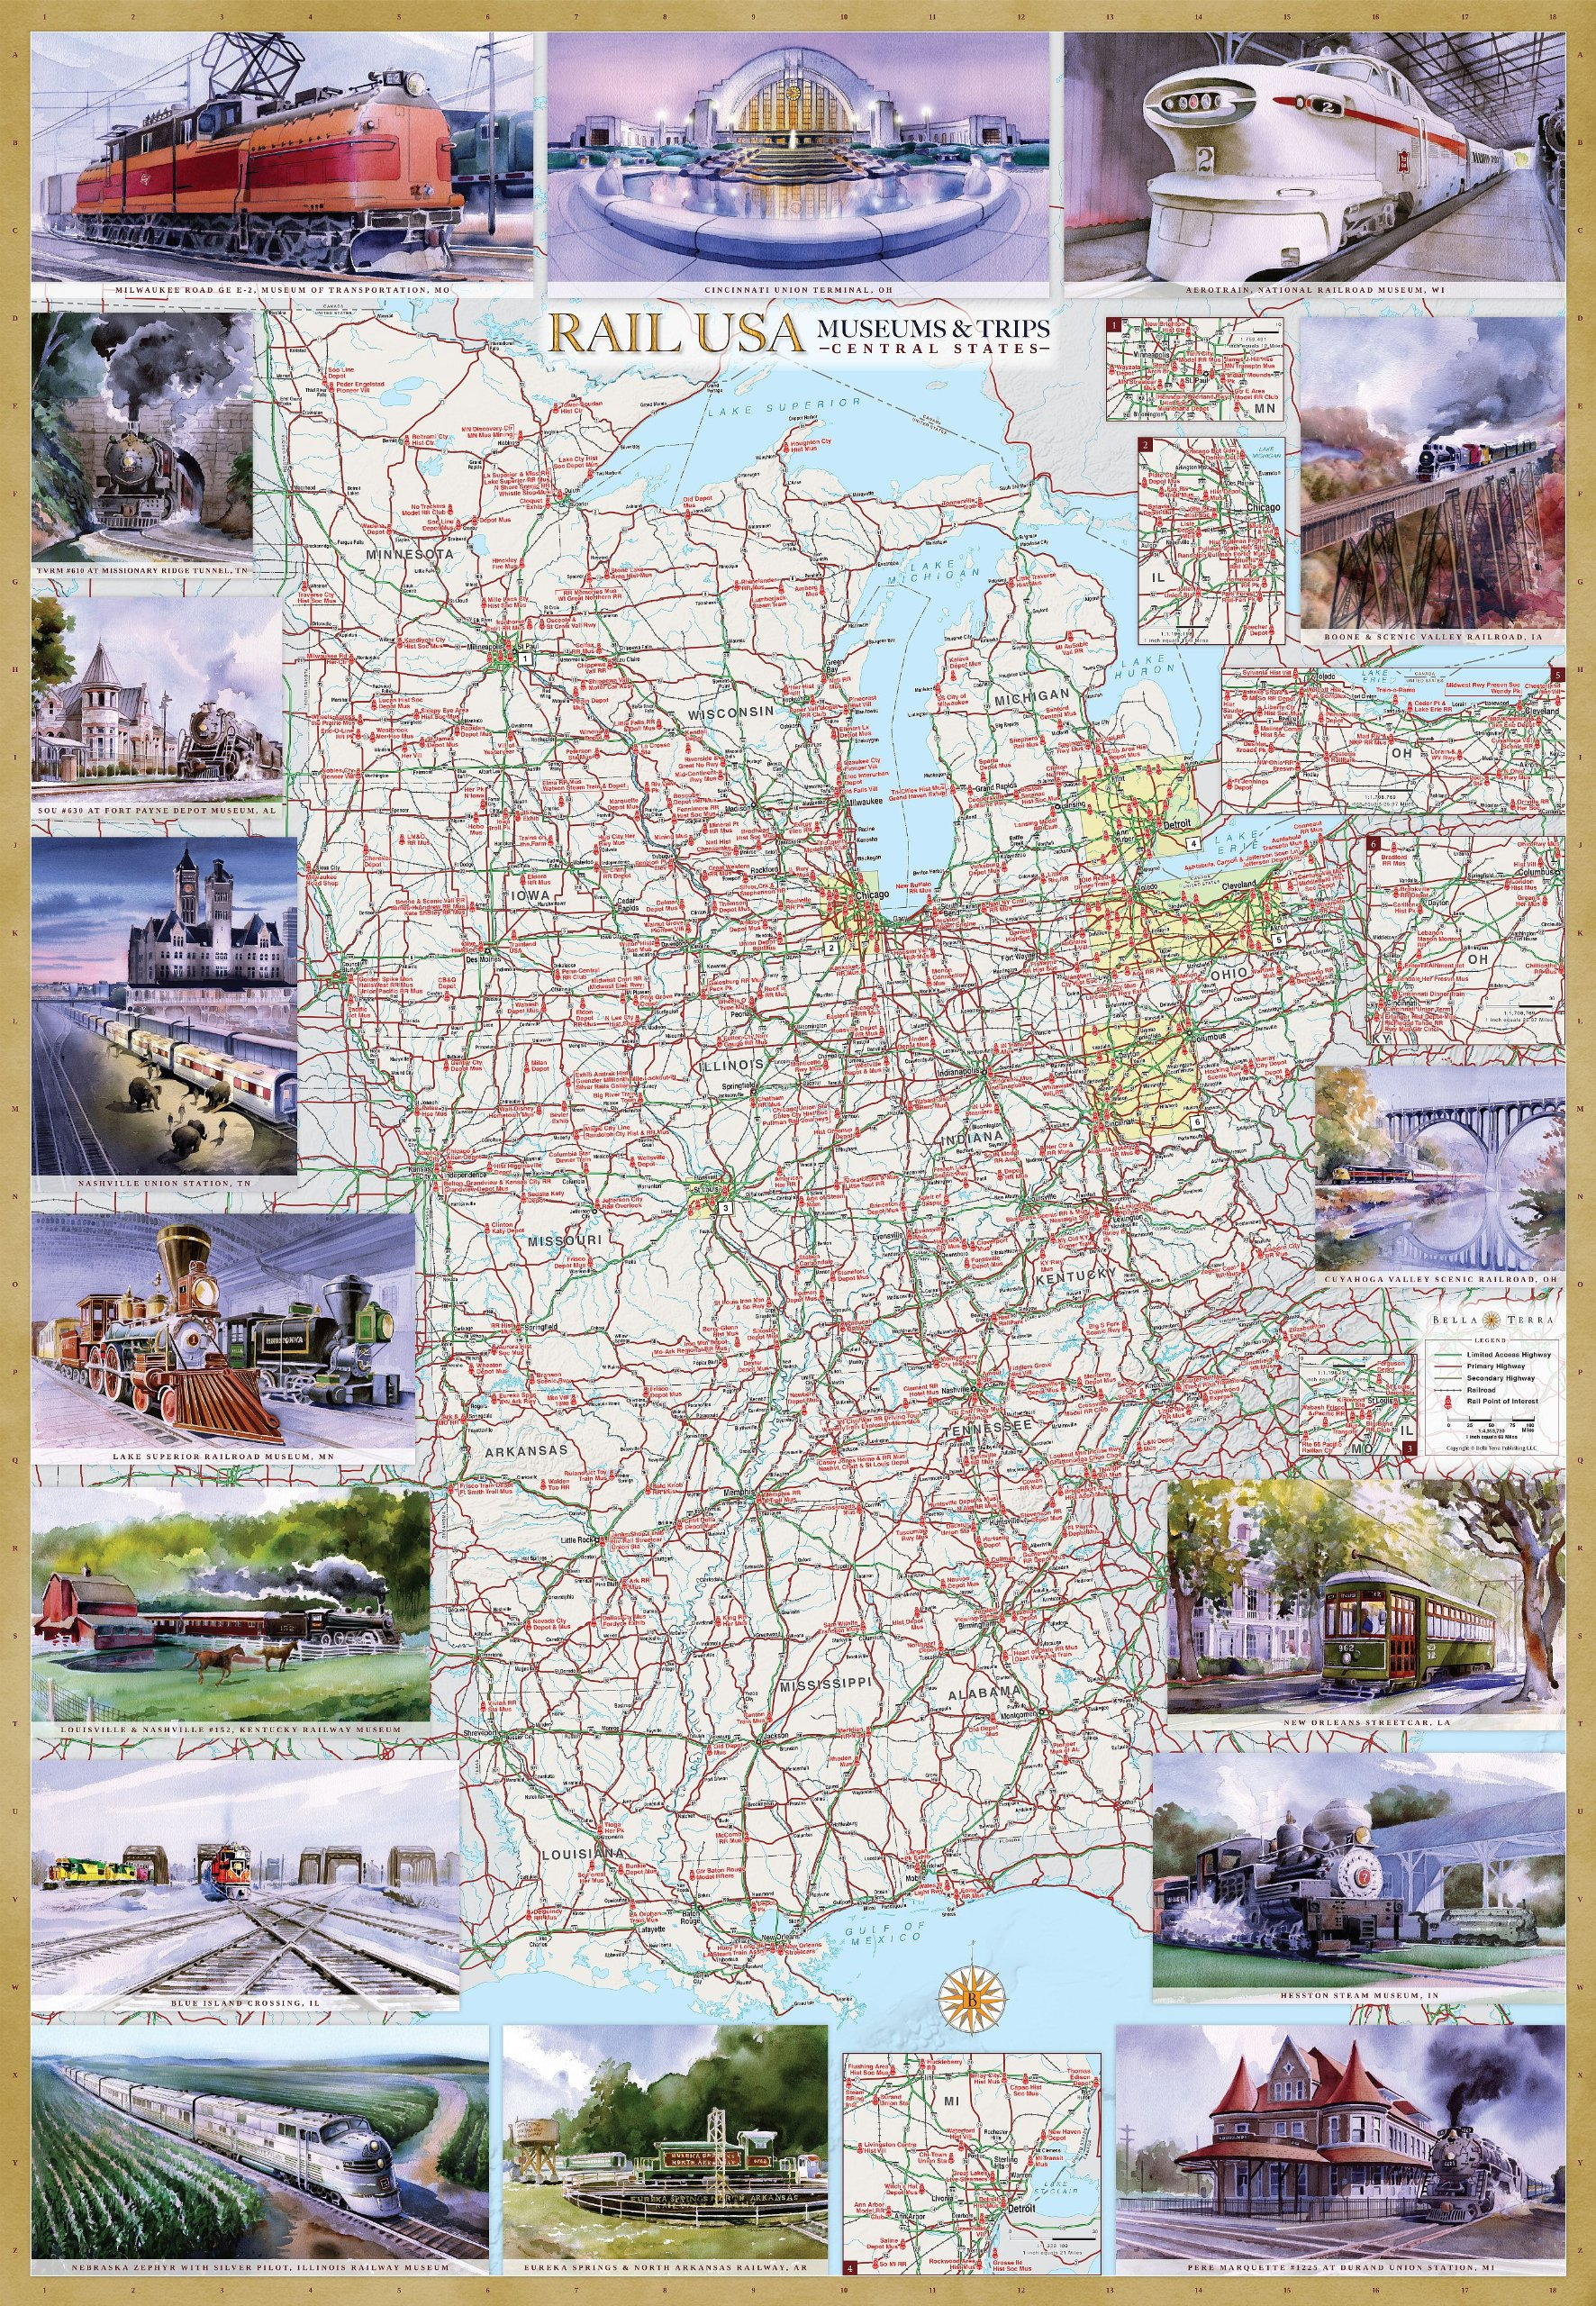 Rail U.S.A. Museums & Trips Central States Illustrated Map Laminated Poster pdf